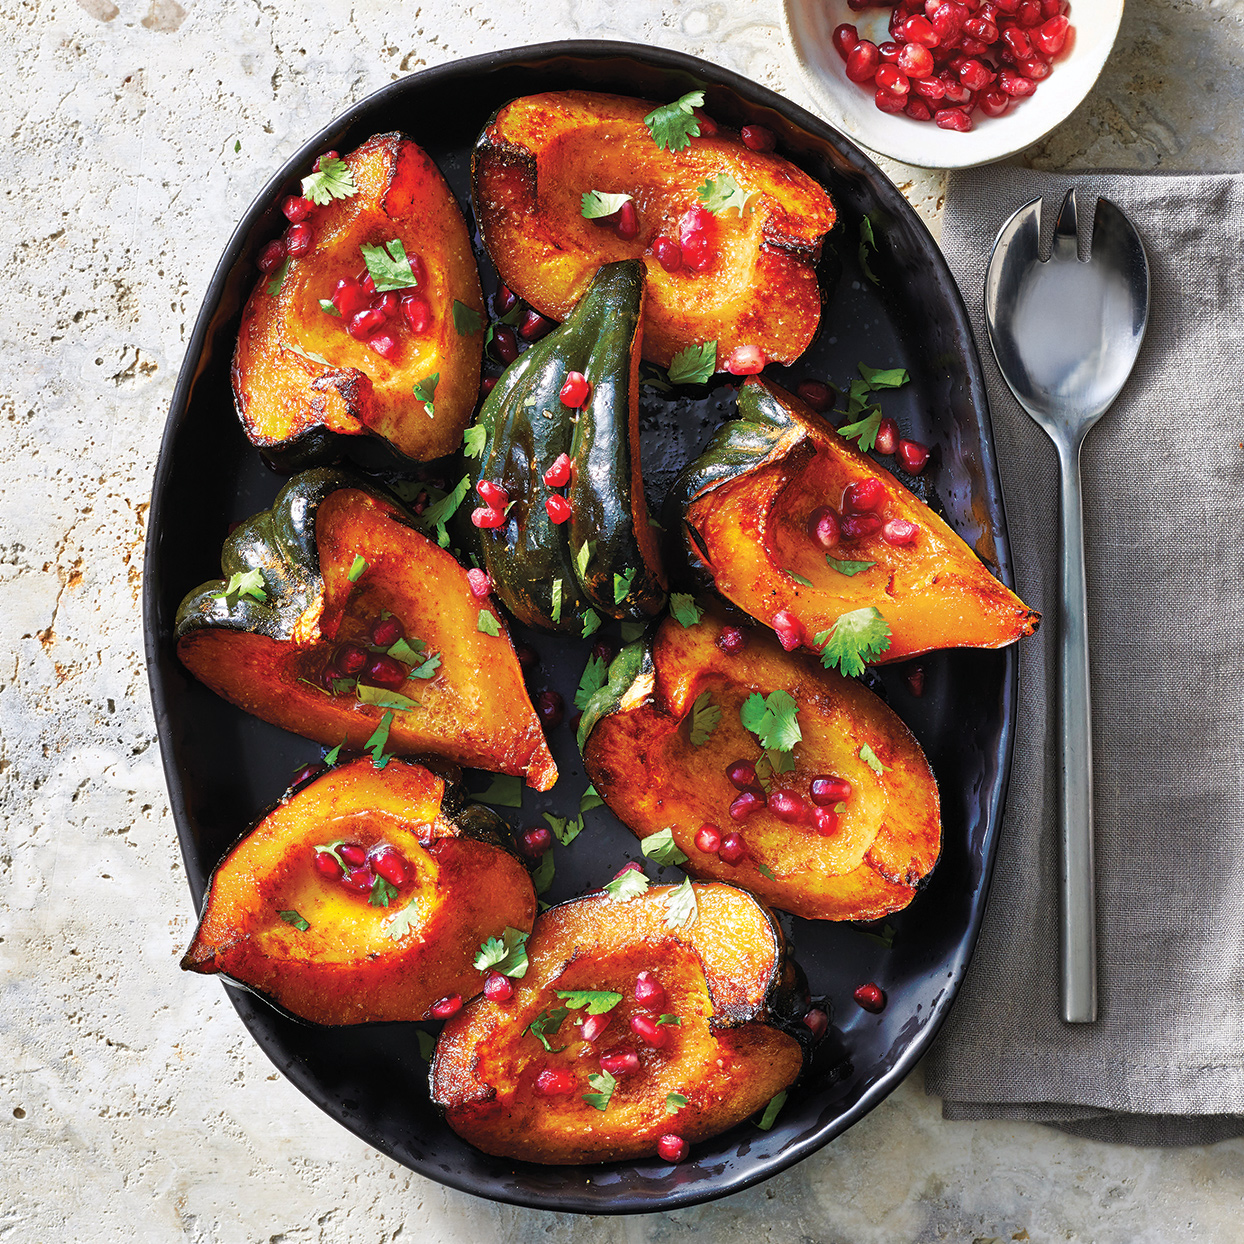 With the honey, butter and cinnamon sauce drizzled on top and the sprinkling of pomegranate arils, this slow-cooker acorn squash is almost like a dessert. You can also drizzle the sauce over oatmeal and baked apples for breakfast.